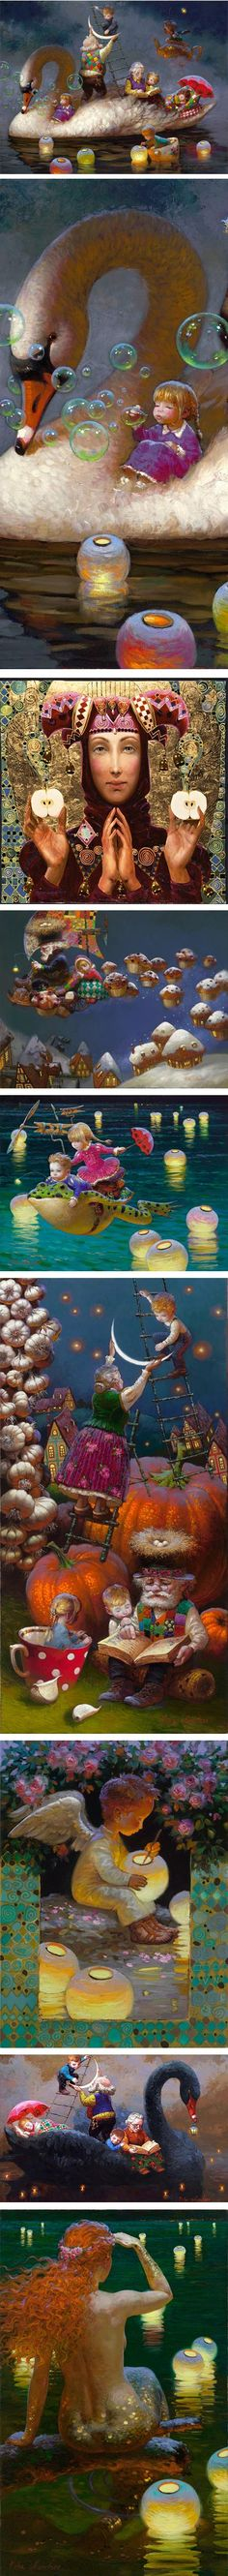 Victor Nizovtsev - illustration